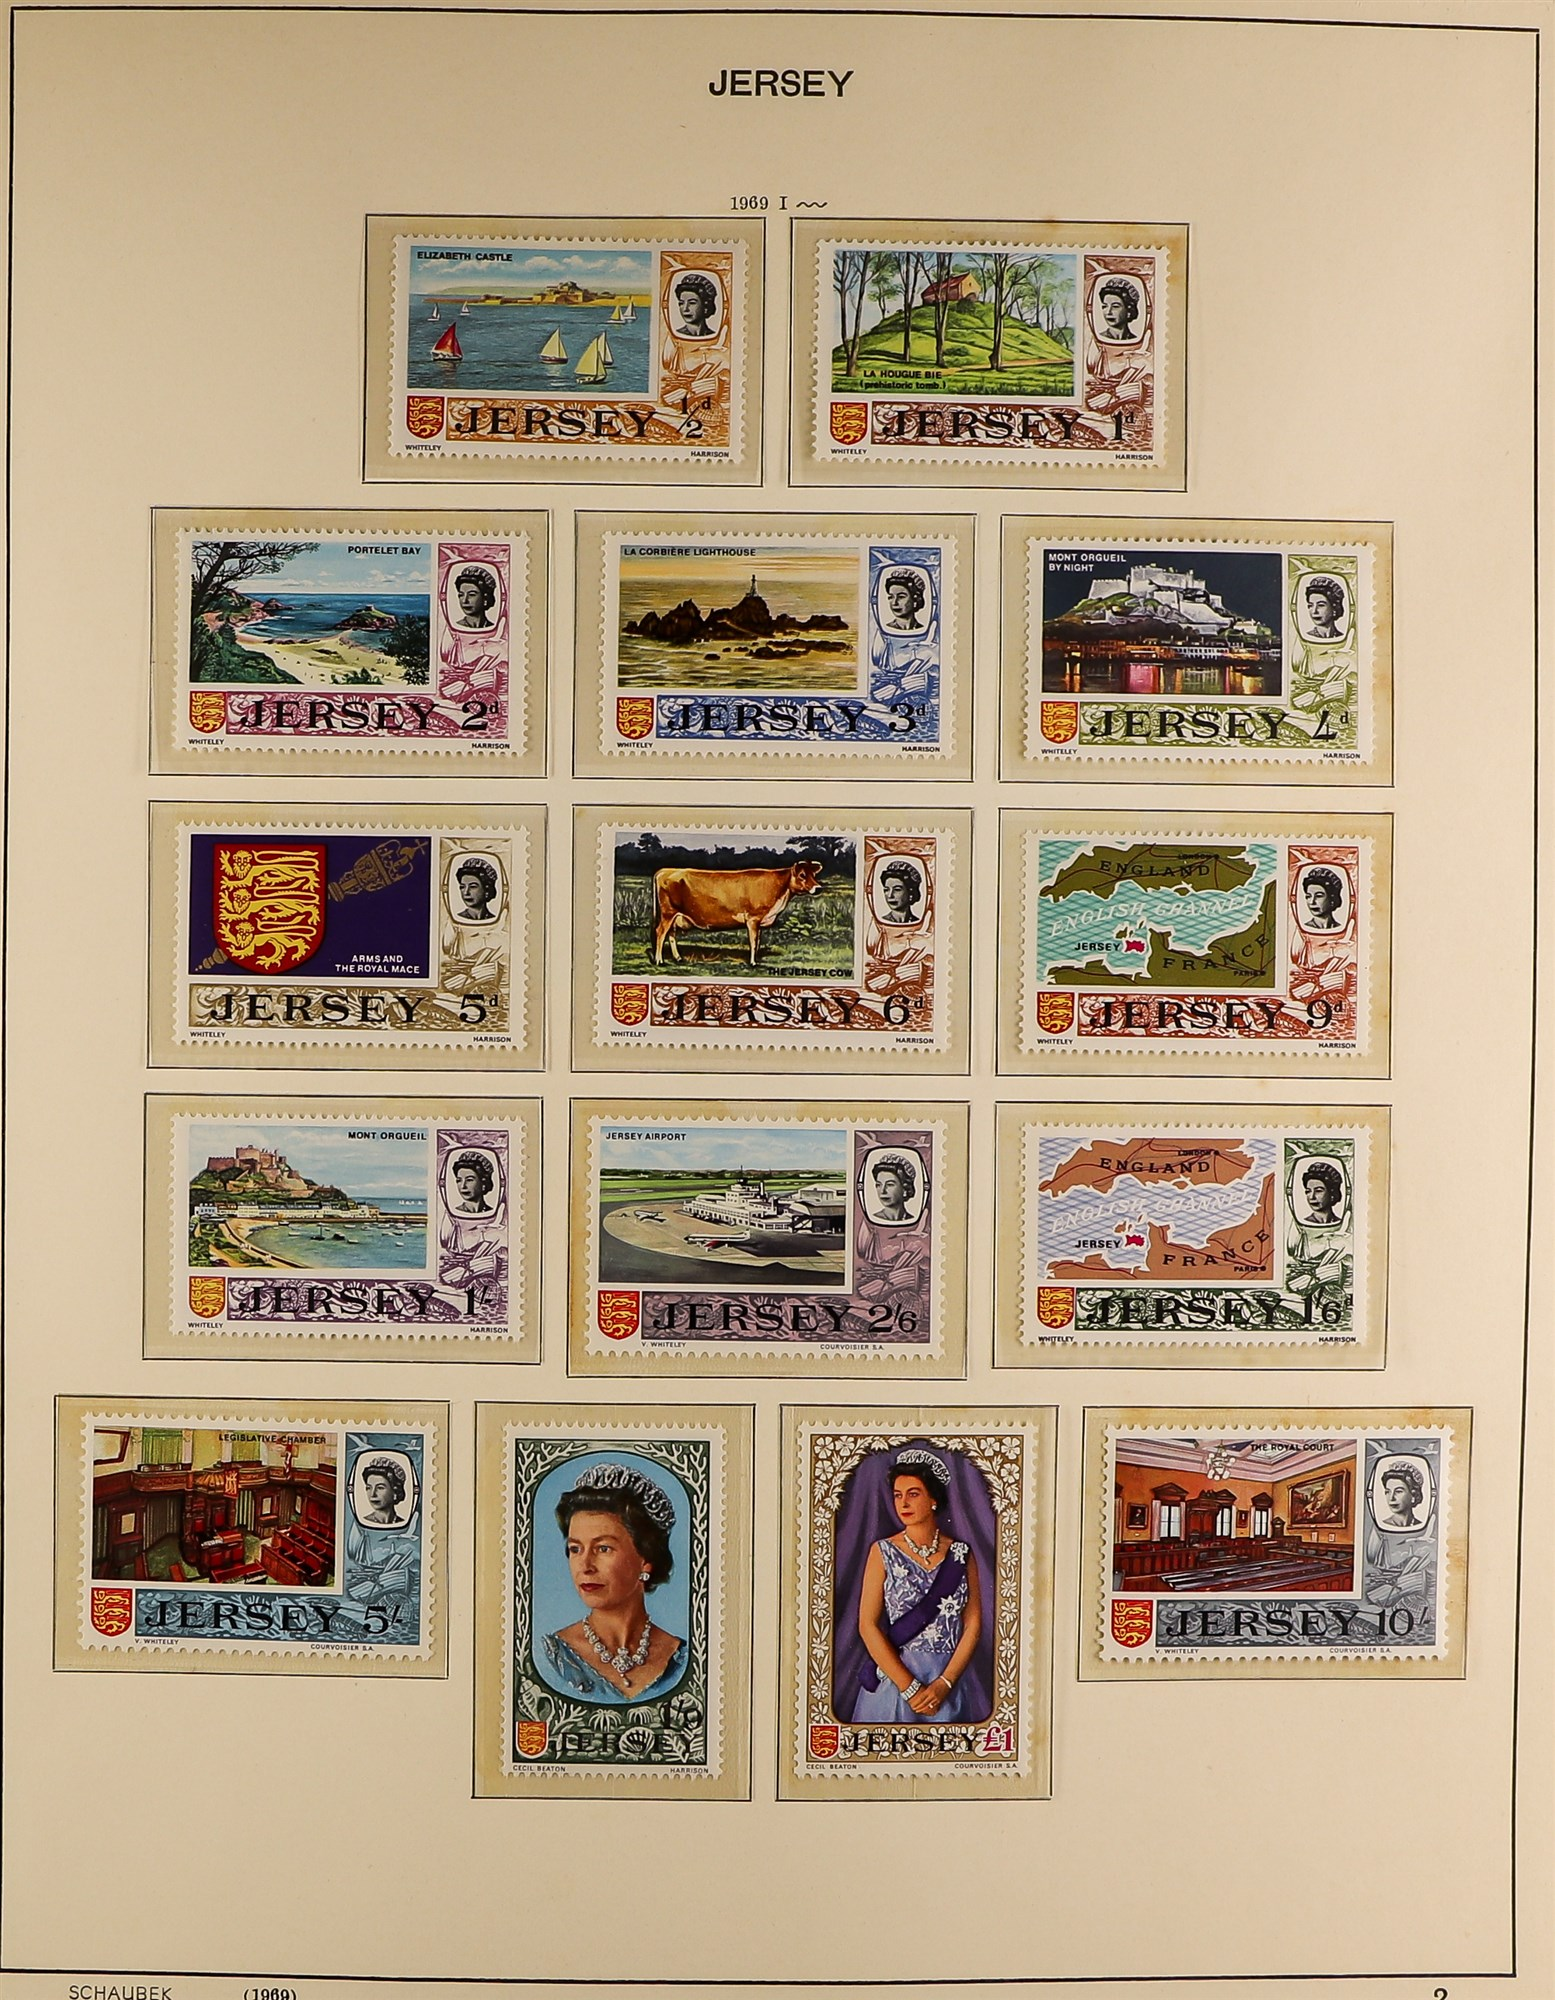 GB.ISLANDS CHANNEL ISLANDS AND ISLE OF MAN COLLECTIONS 1969-98 never hinged mint collections in - Image 3 of 6